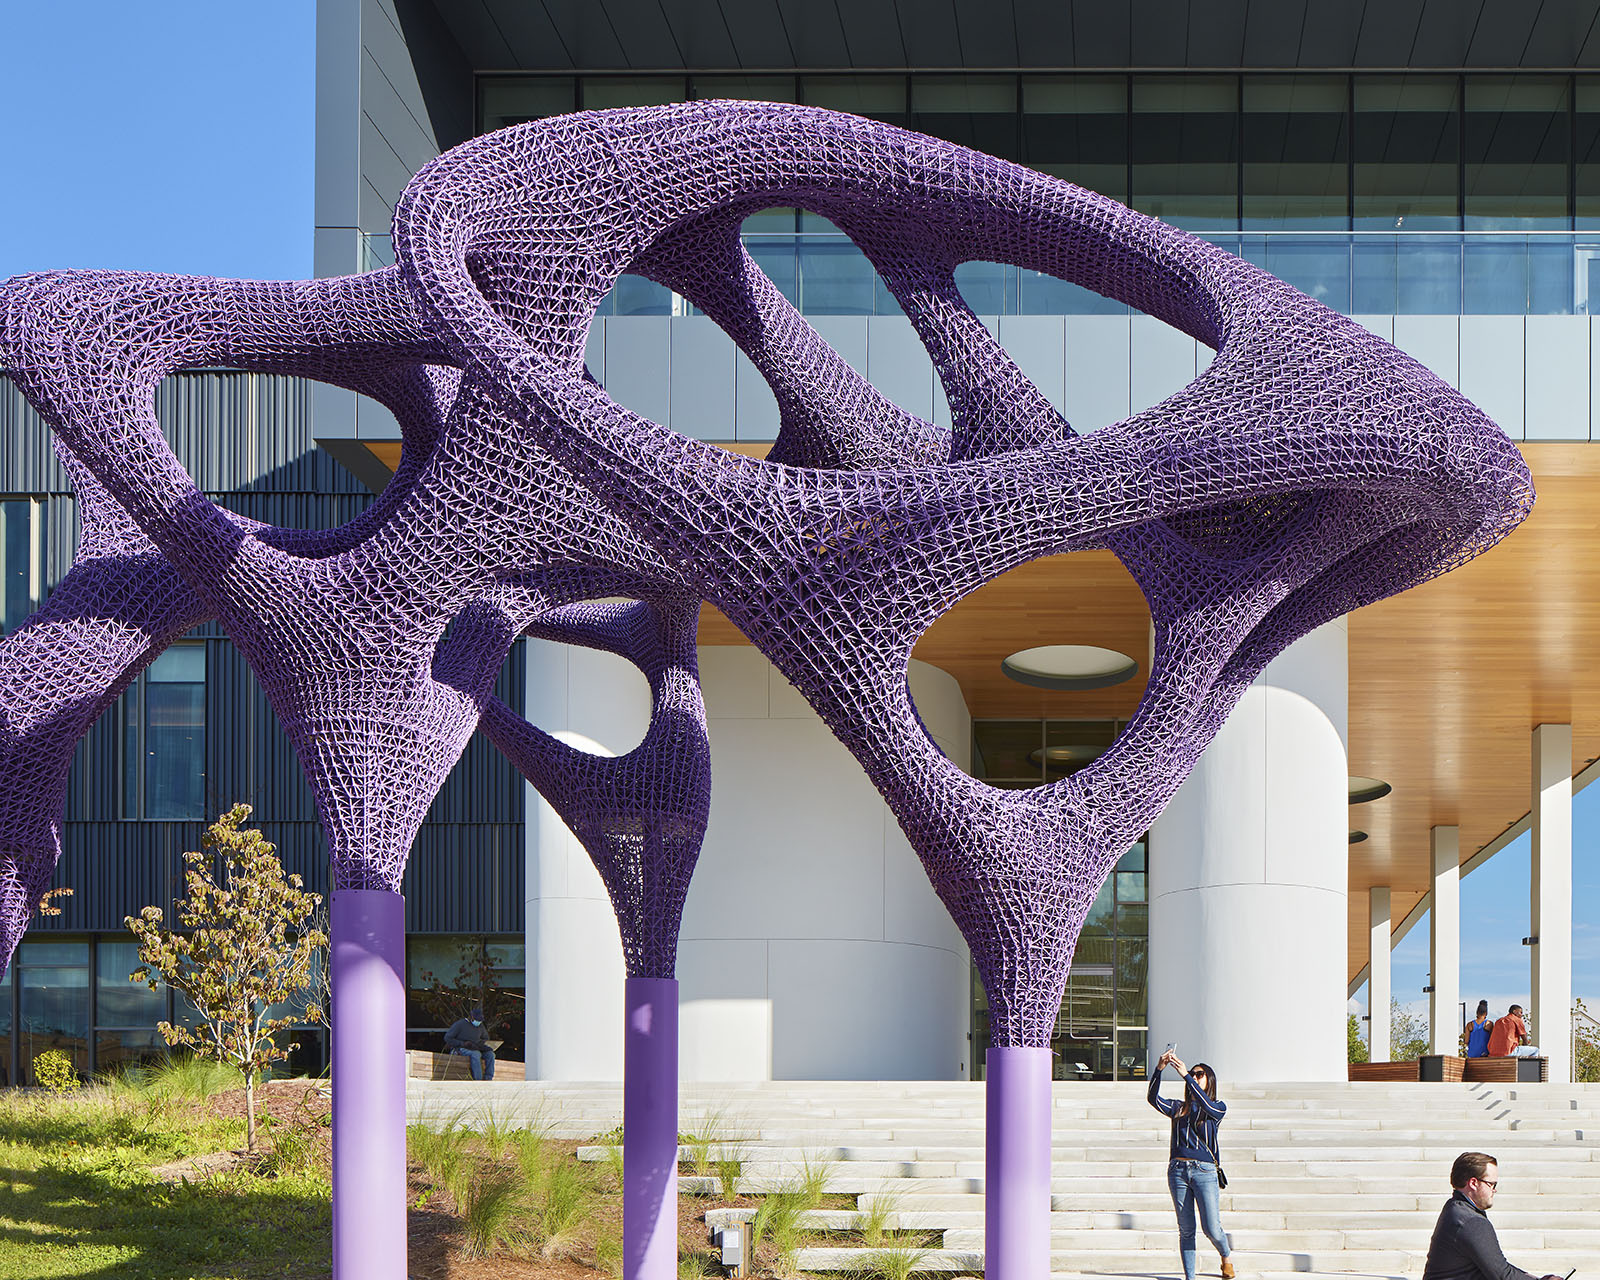 A large, purple, abstract sculpture standing in front of the building